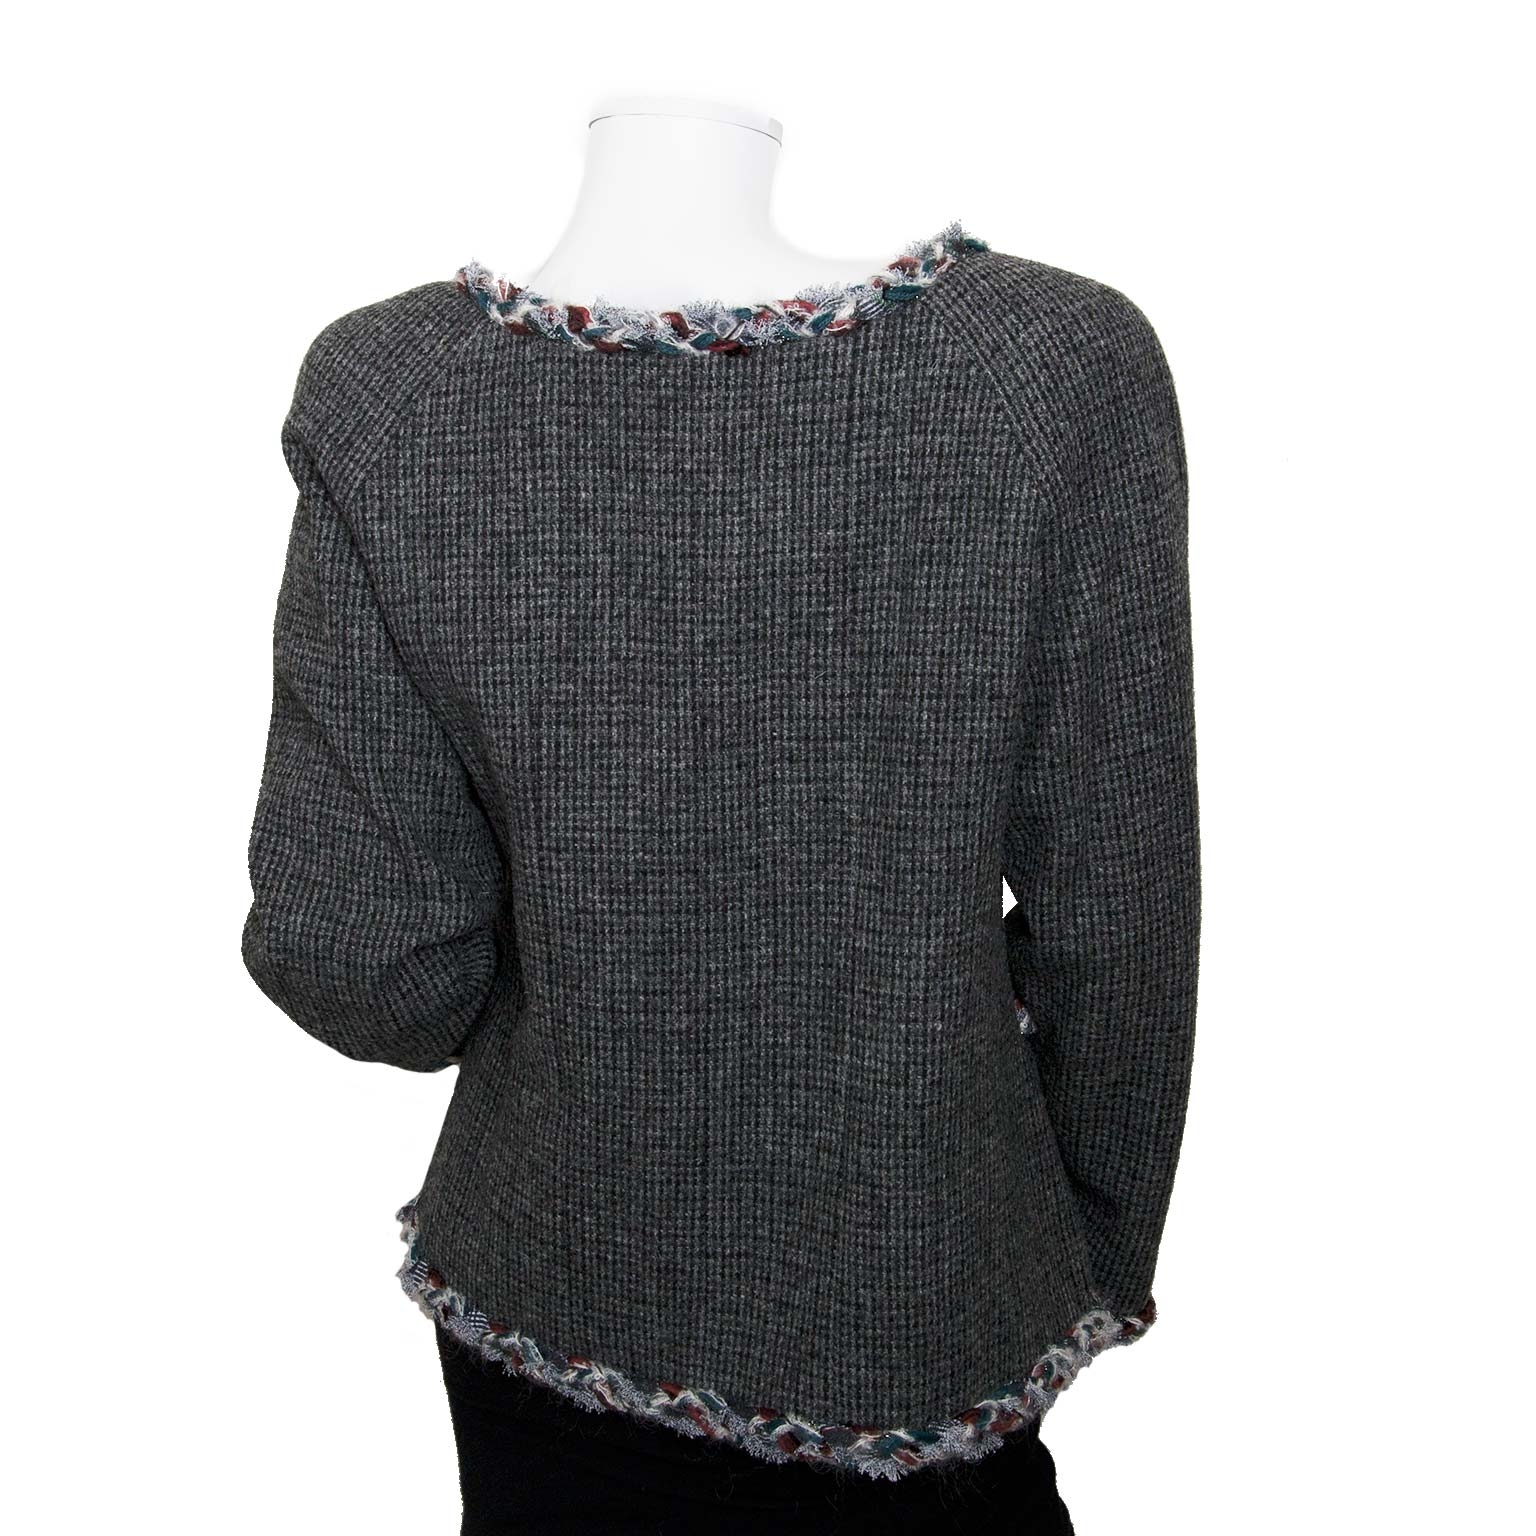 chanel grey tweed vest now for sale at labellov vintage fashion webshop belgium